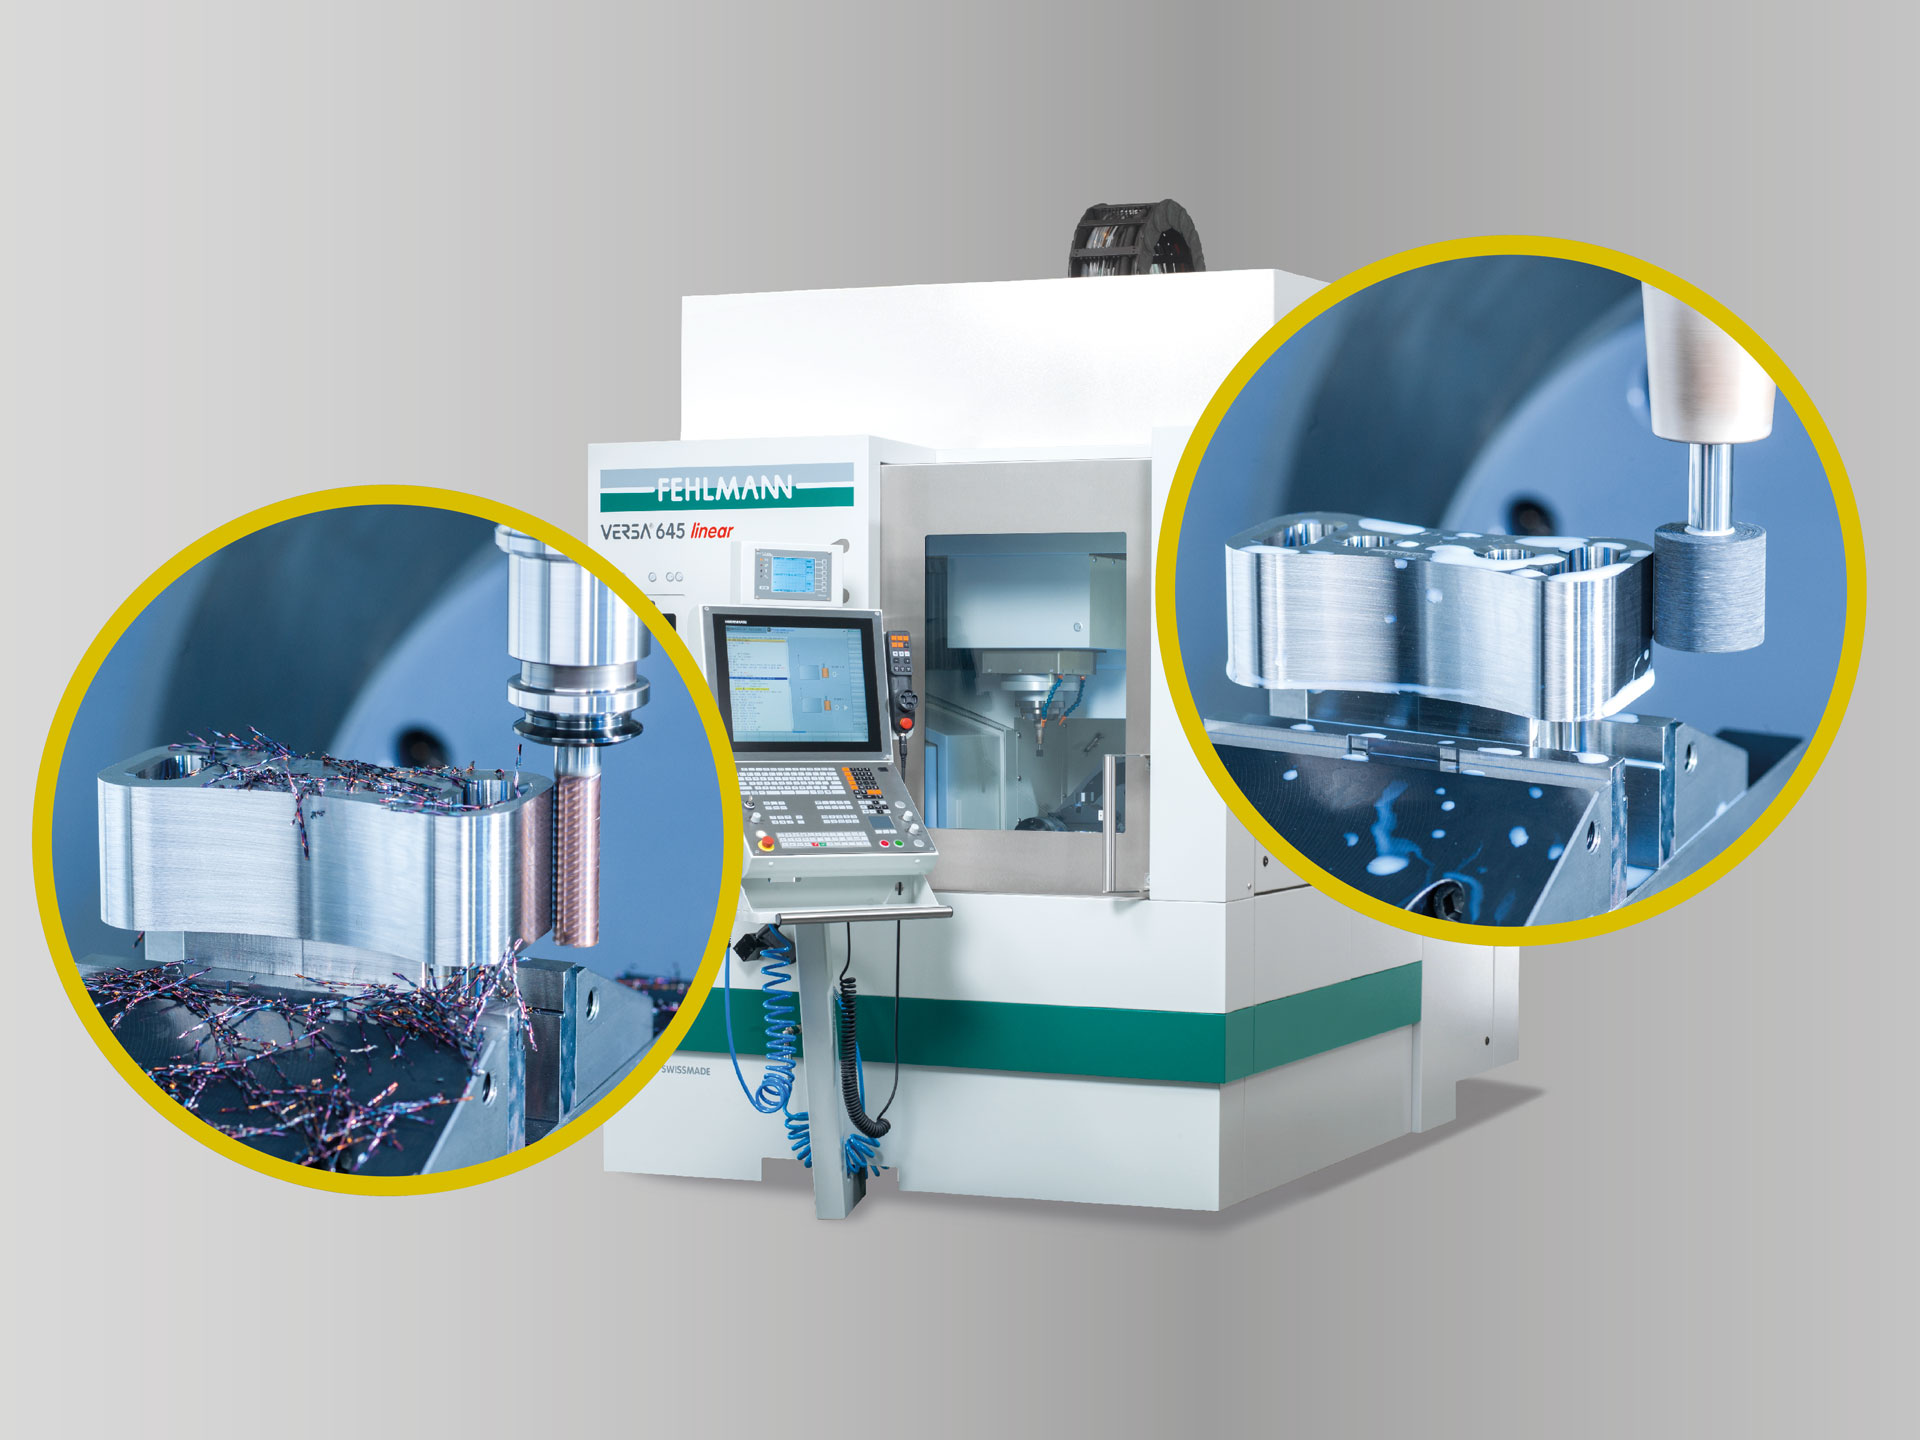 High-precision milling and coordinate grinding on the same machine